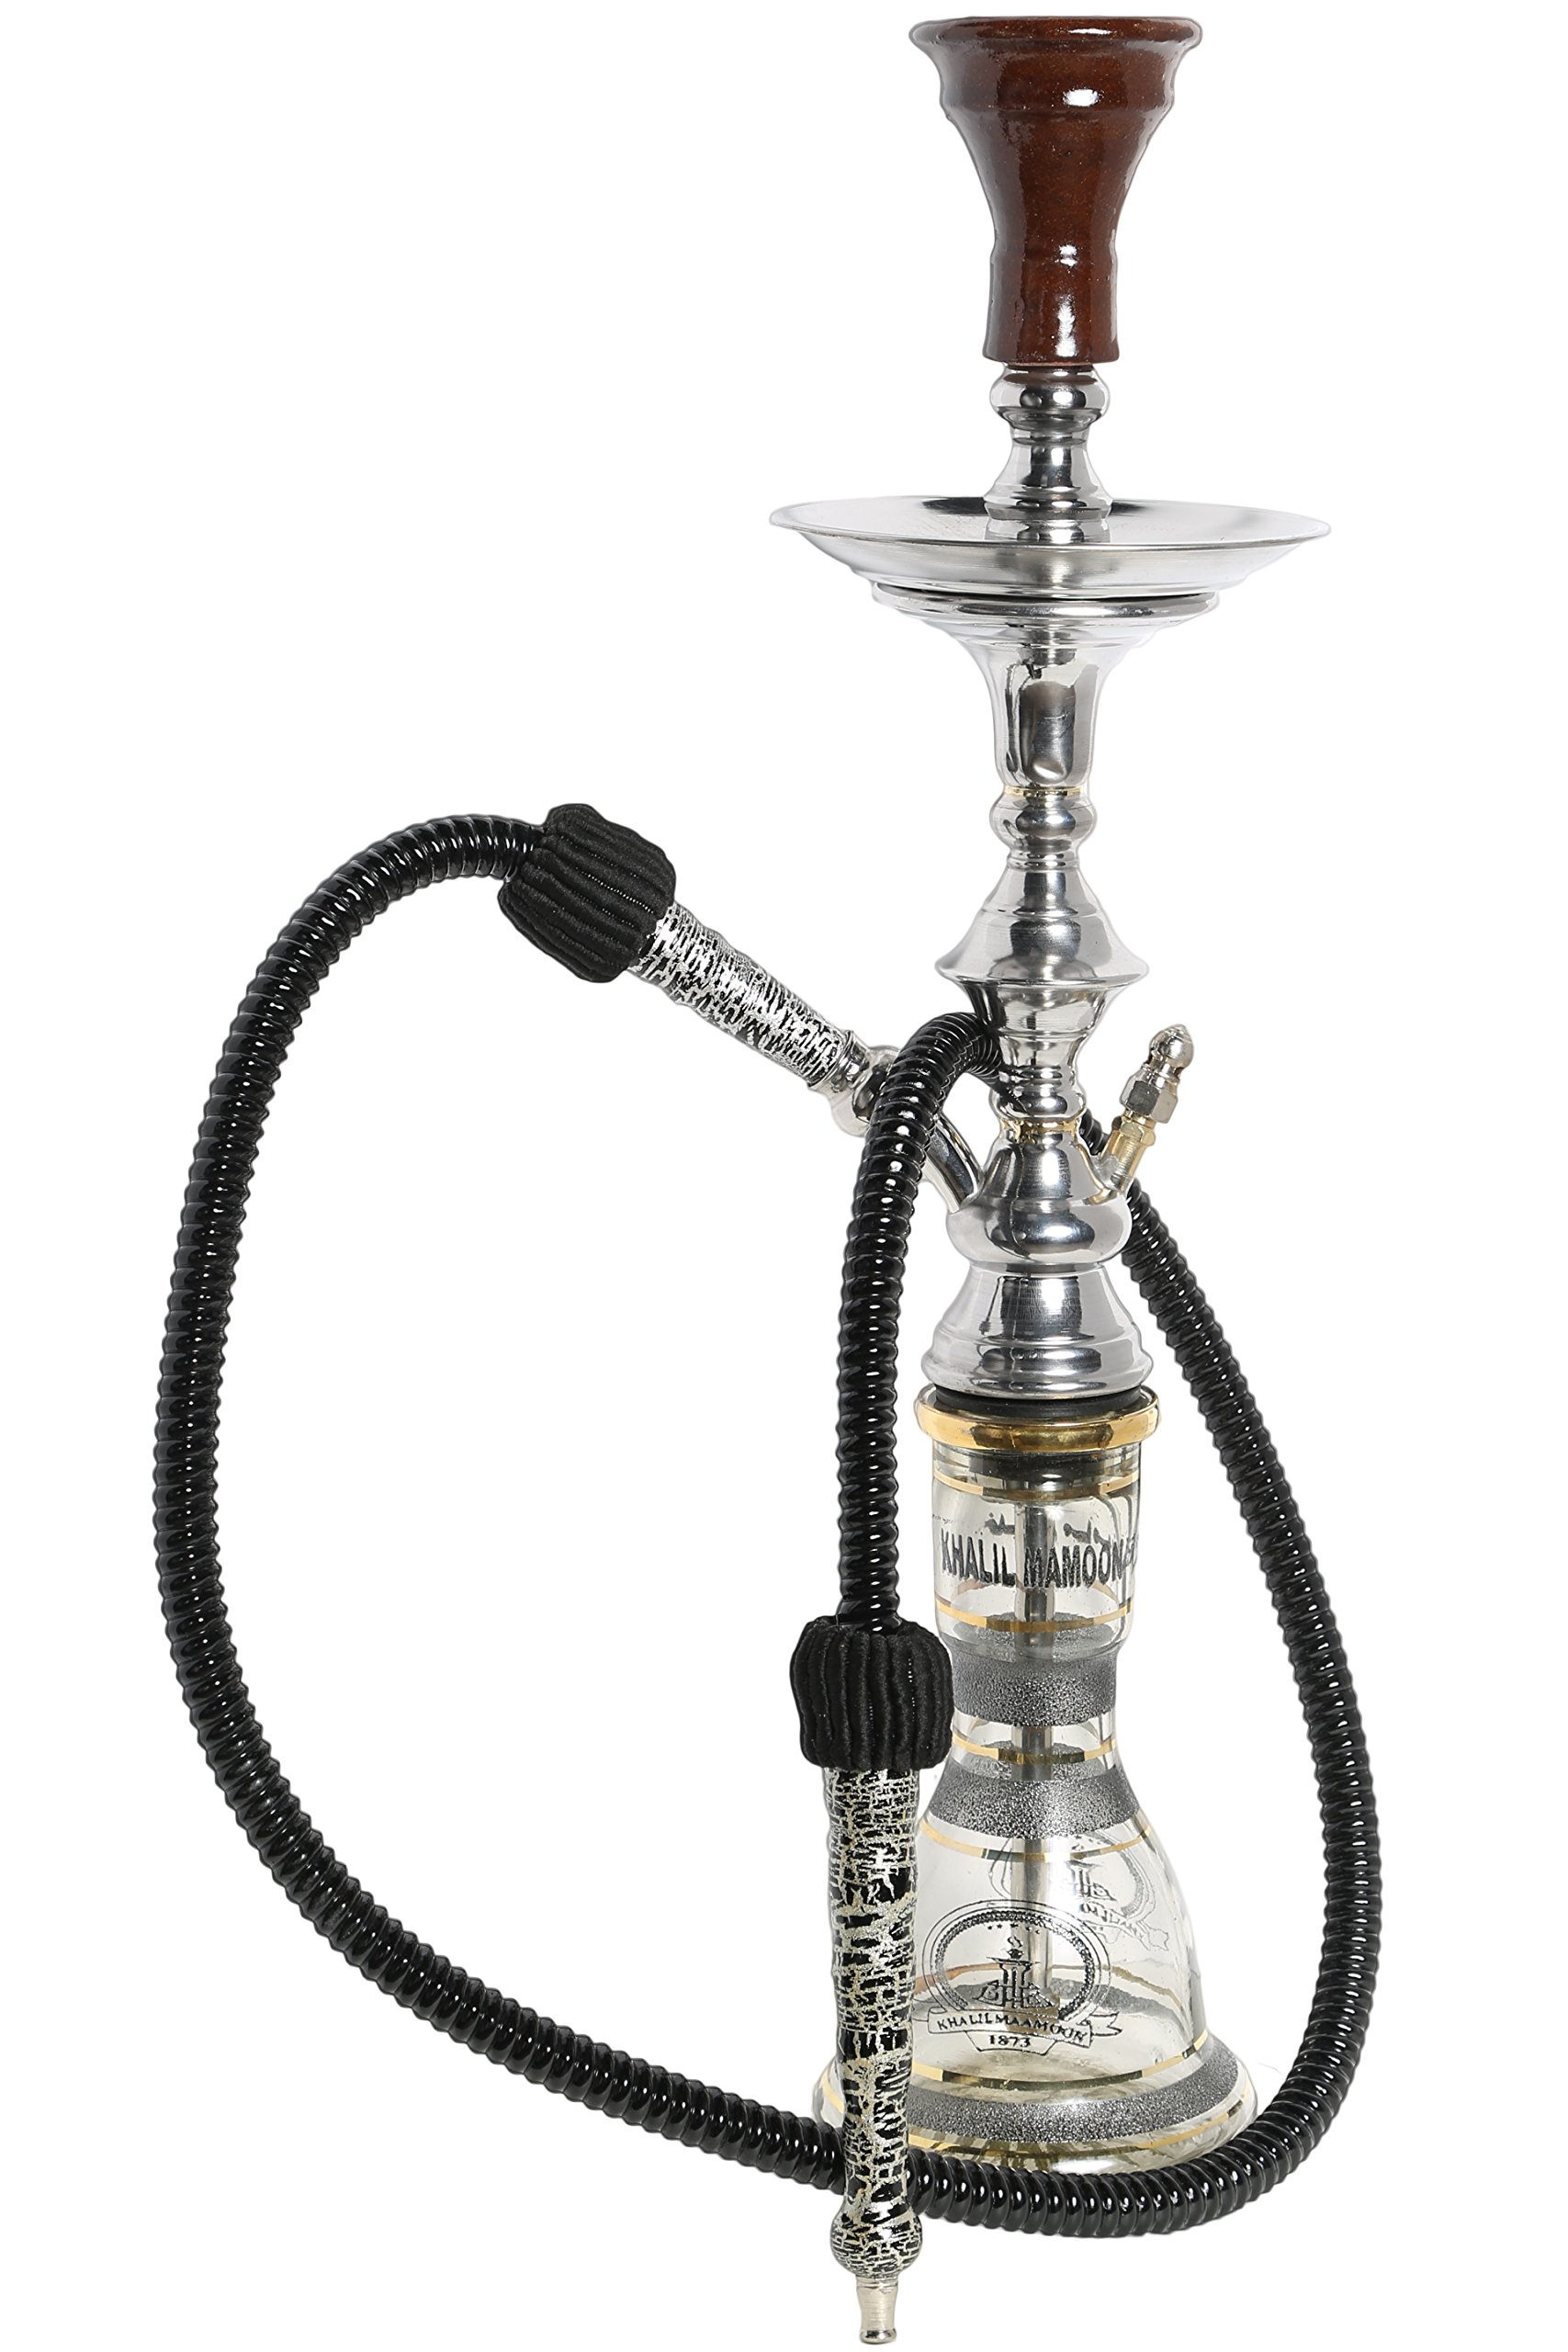 Authentic Mini 22'' Handmade Traditional Style Egyptian Khalil Mamoon Karmana Narguile Hookah (Silver)